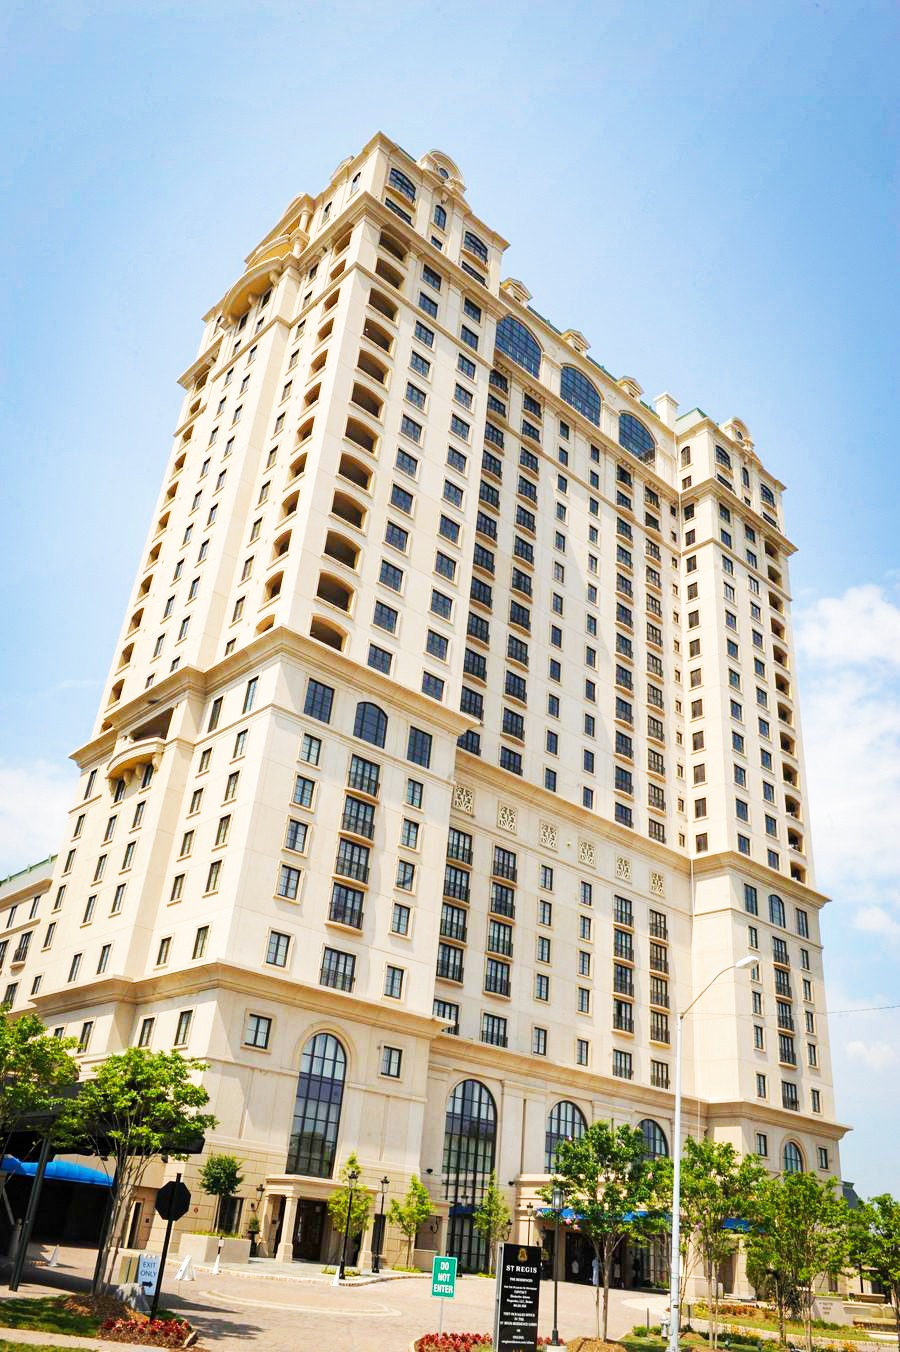 Presto technicians perform glass restoration and protection to windows of luxury hotel in Atlanta, GA